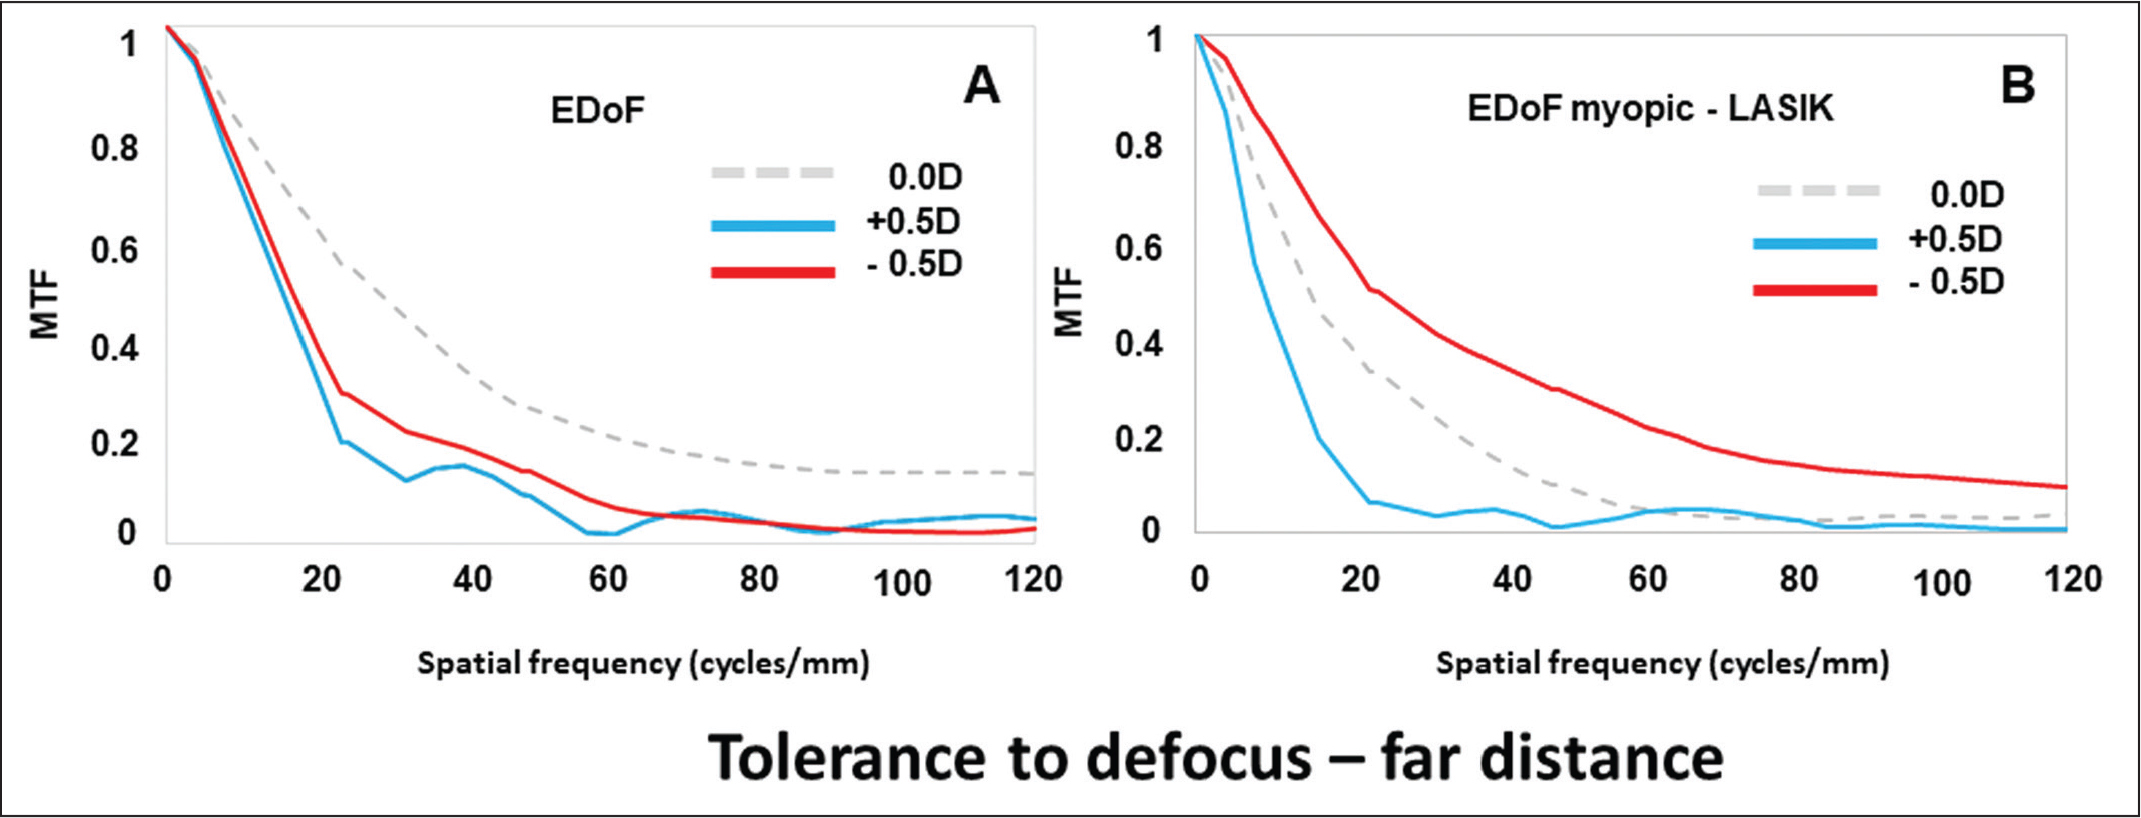 Modulation transfer function (MTF) curves for the 0.00, +0.50, and −0.50 diopters (D) focal points for the (A) extended depth of focus (EDOF) intraocular lens and (B) EDOF intraocular lens with the positive increment of spherical aberration that simulates previous myopic laser in situ keratomileusis (LASIK).